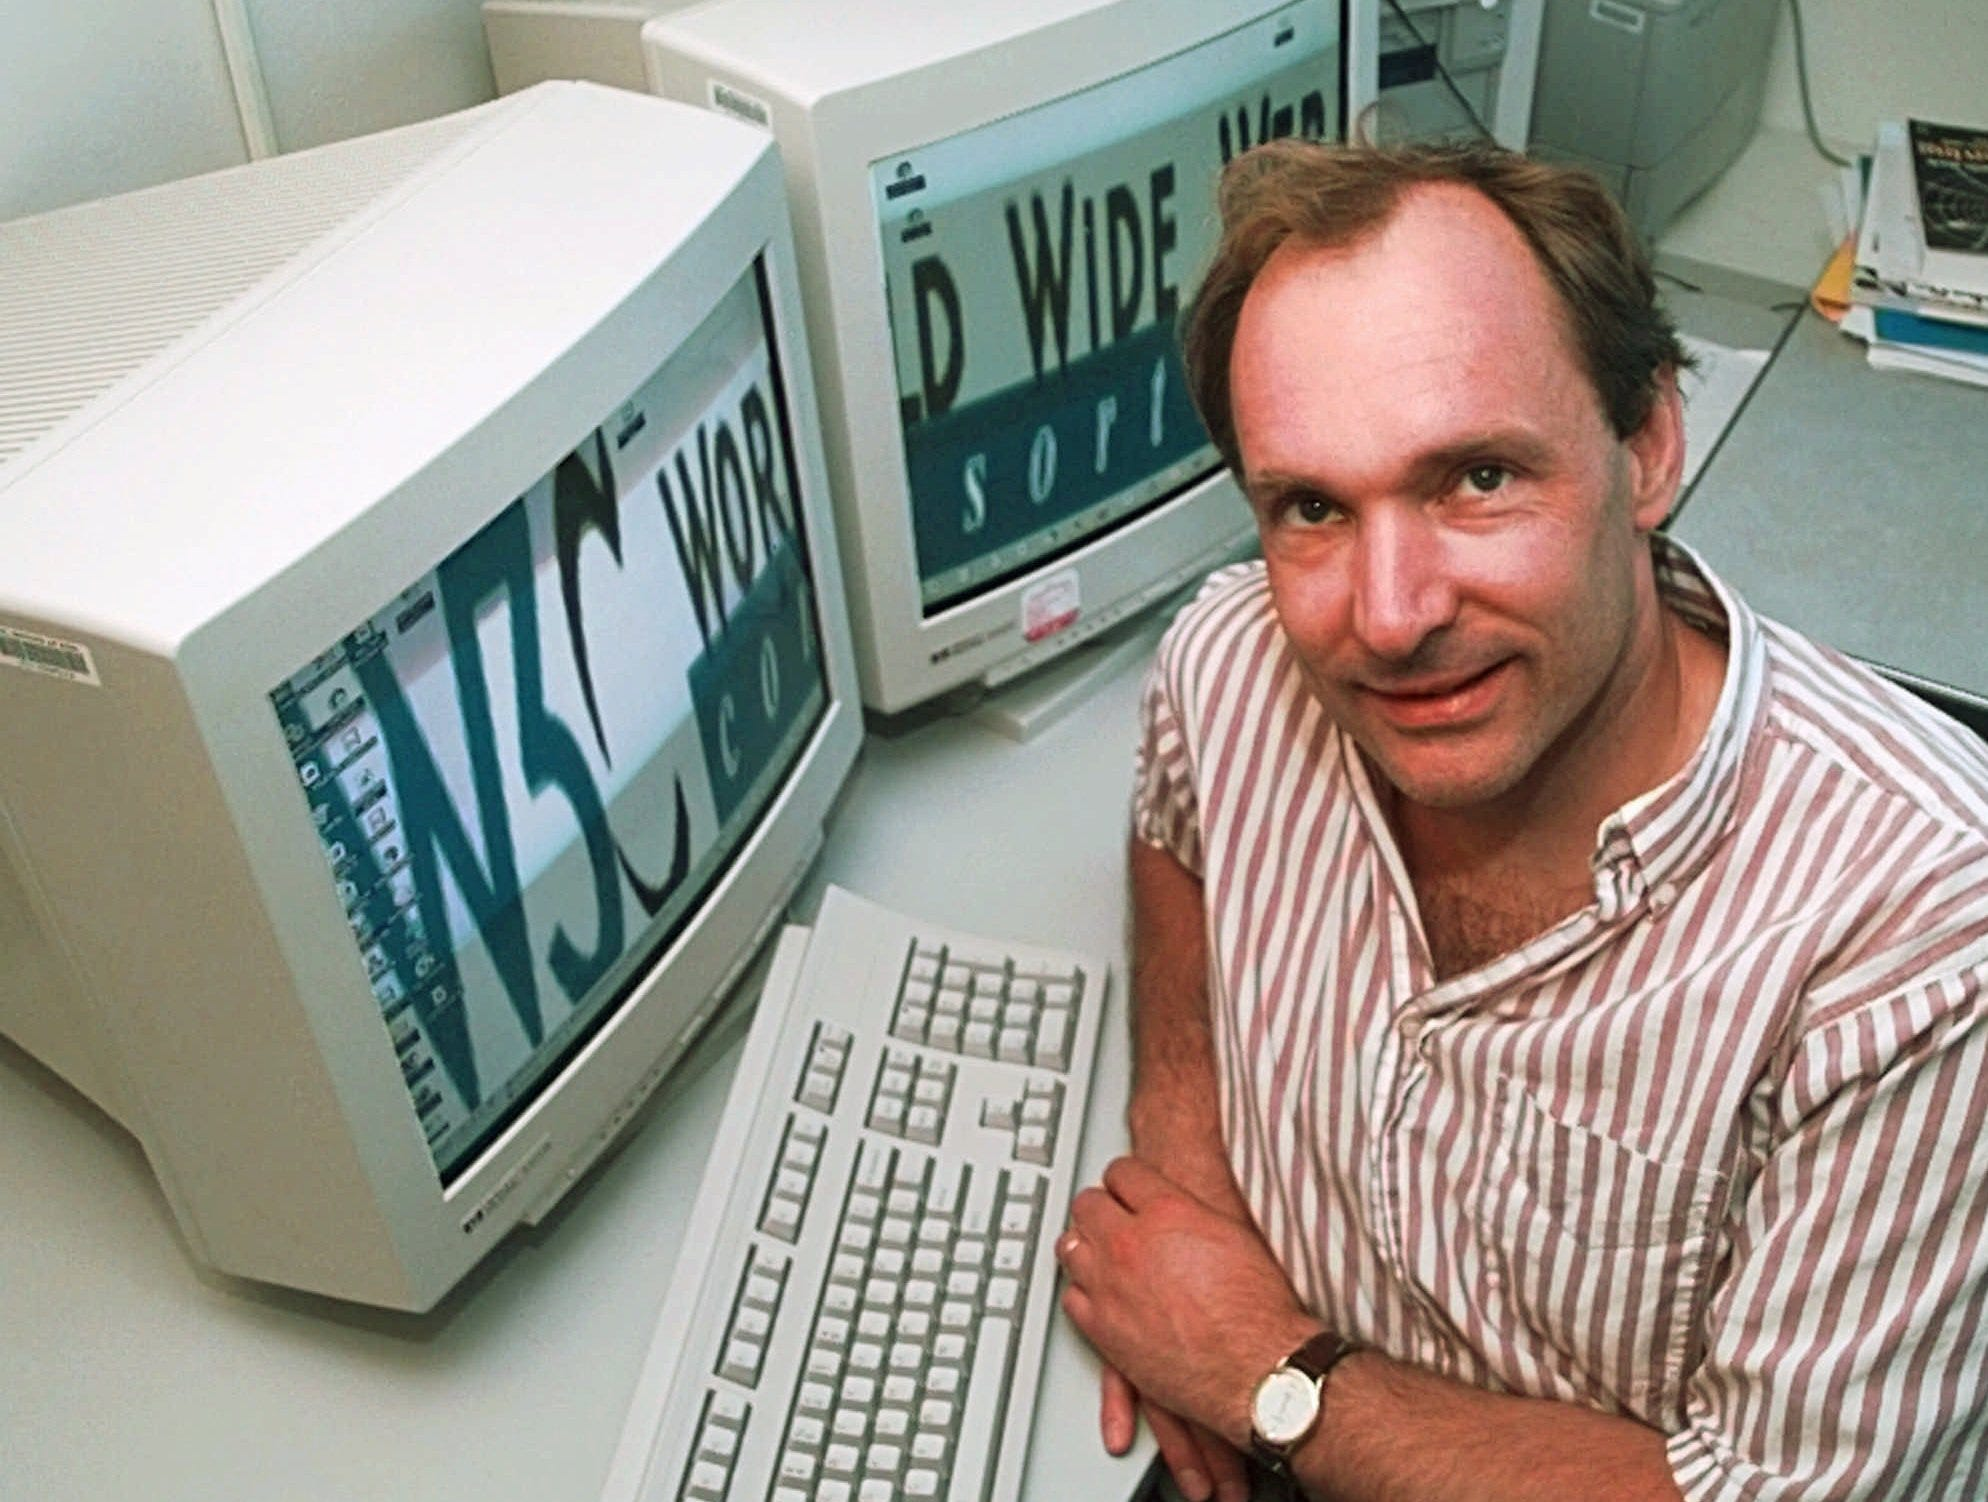 Protect net neutrality and Internet freedom: World Wide Web inventor